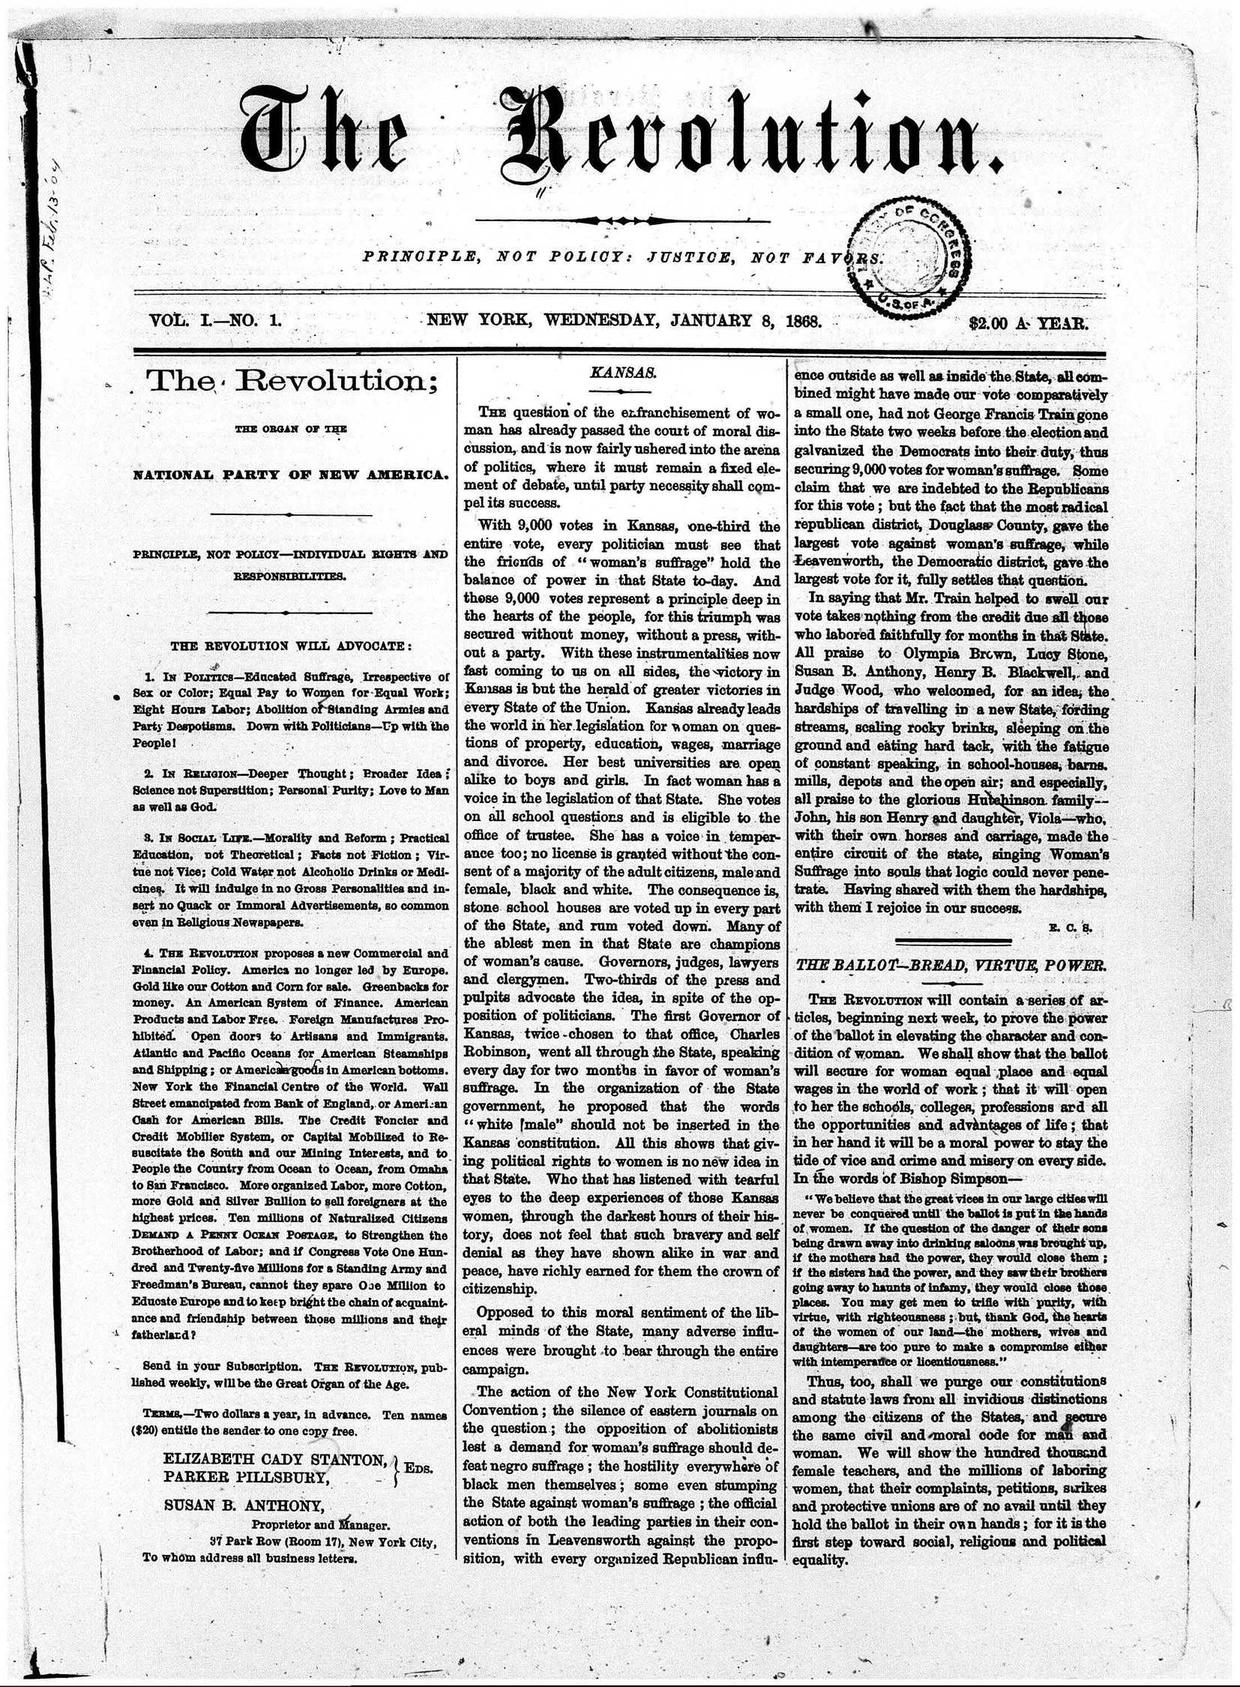 The-Revolution-Susan-B.-Anthony's-Suffrage-Women's-Rights-Newspaper-January-8,-1868